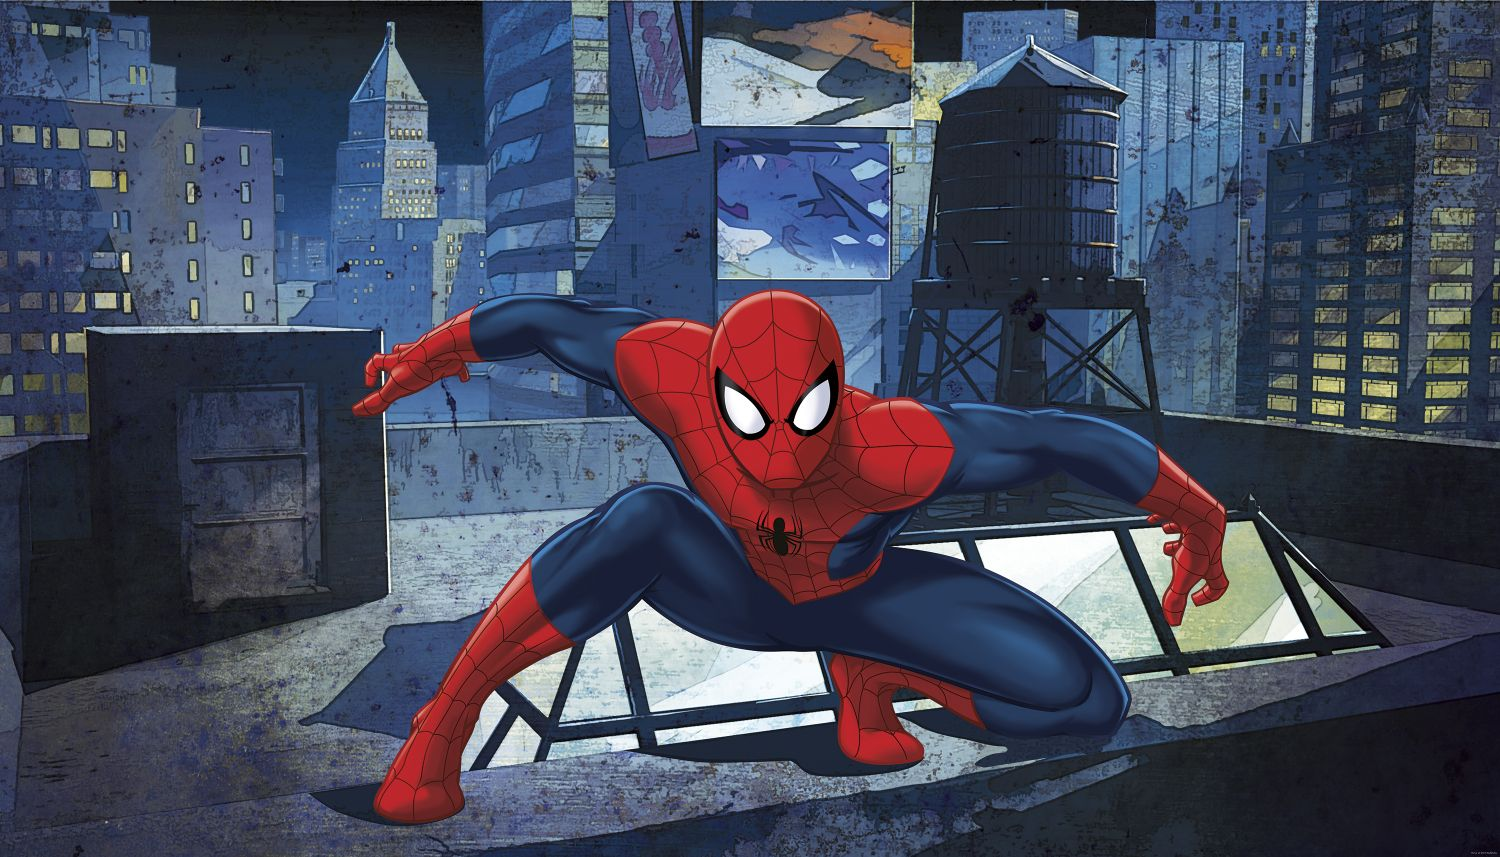 Ultimate spider man xl wall mural 105 wide x 6 high ultimate spiderman rooftop amipublicfo Choice Image